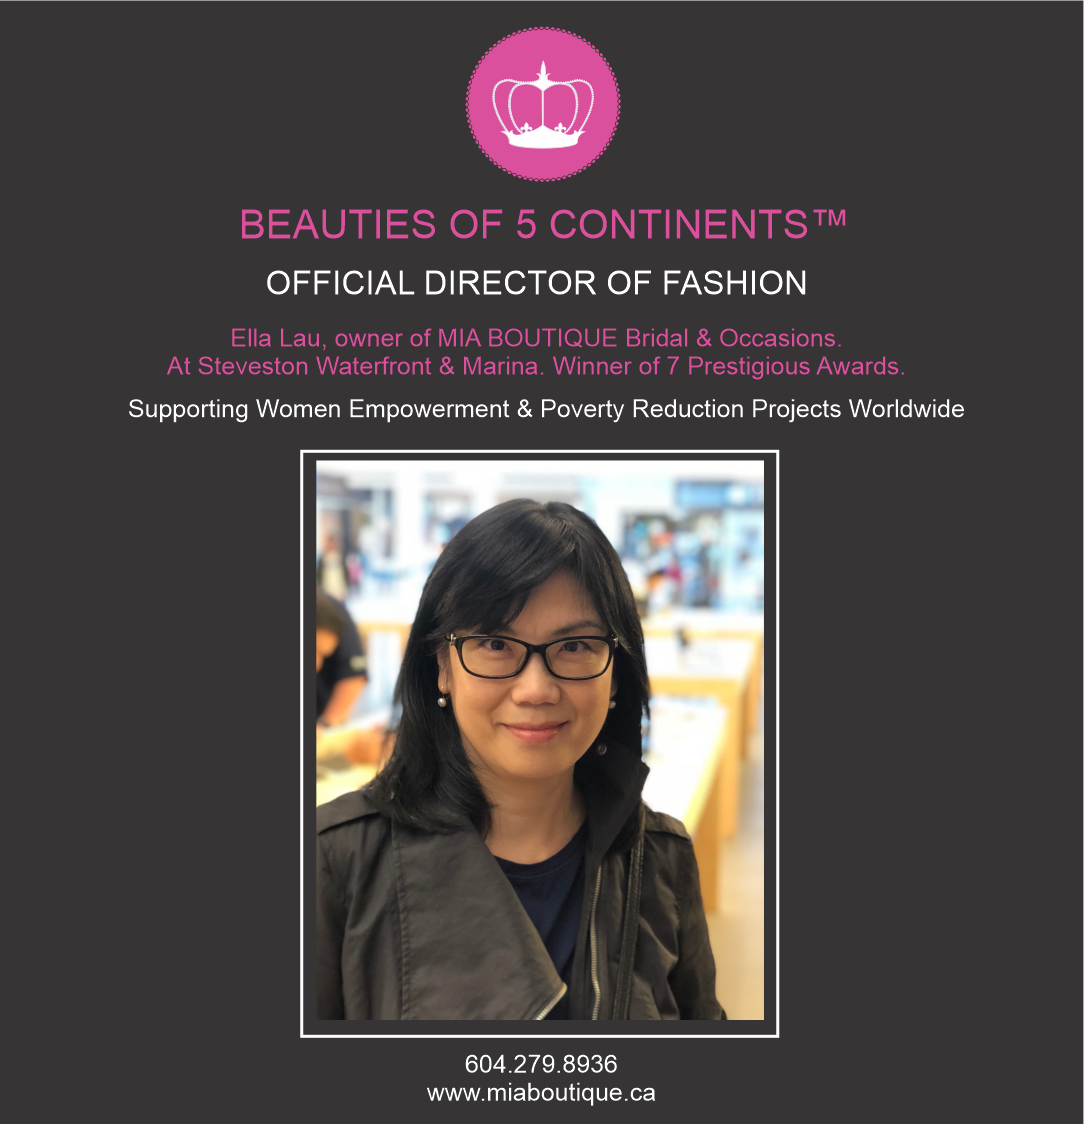 Ella Lau, Director of Fashion of BEAUTIES OF 5 CONTINENTS™